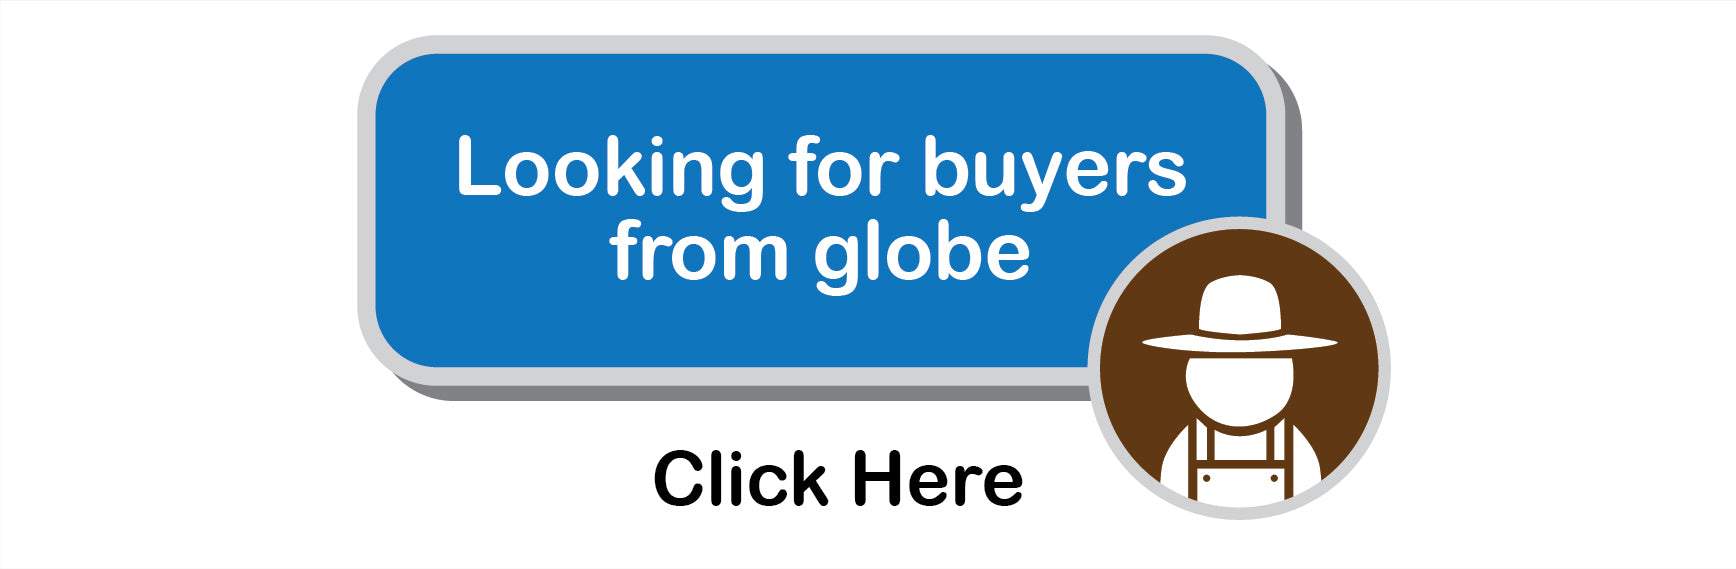 looking for buyers from globe